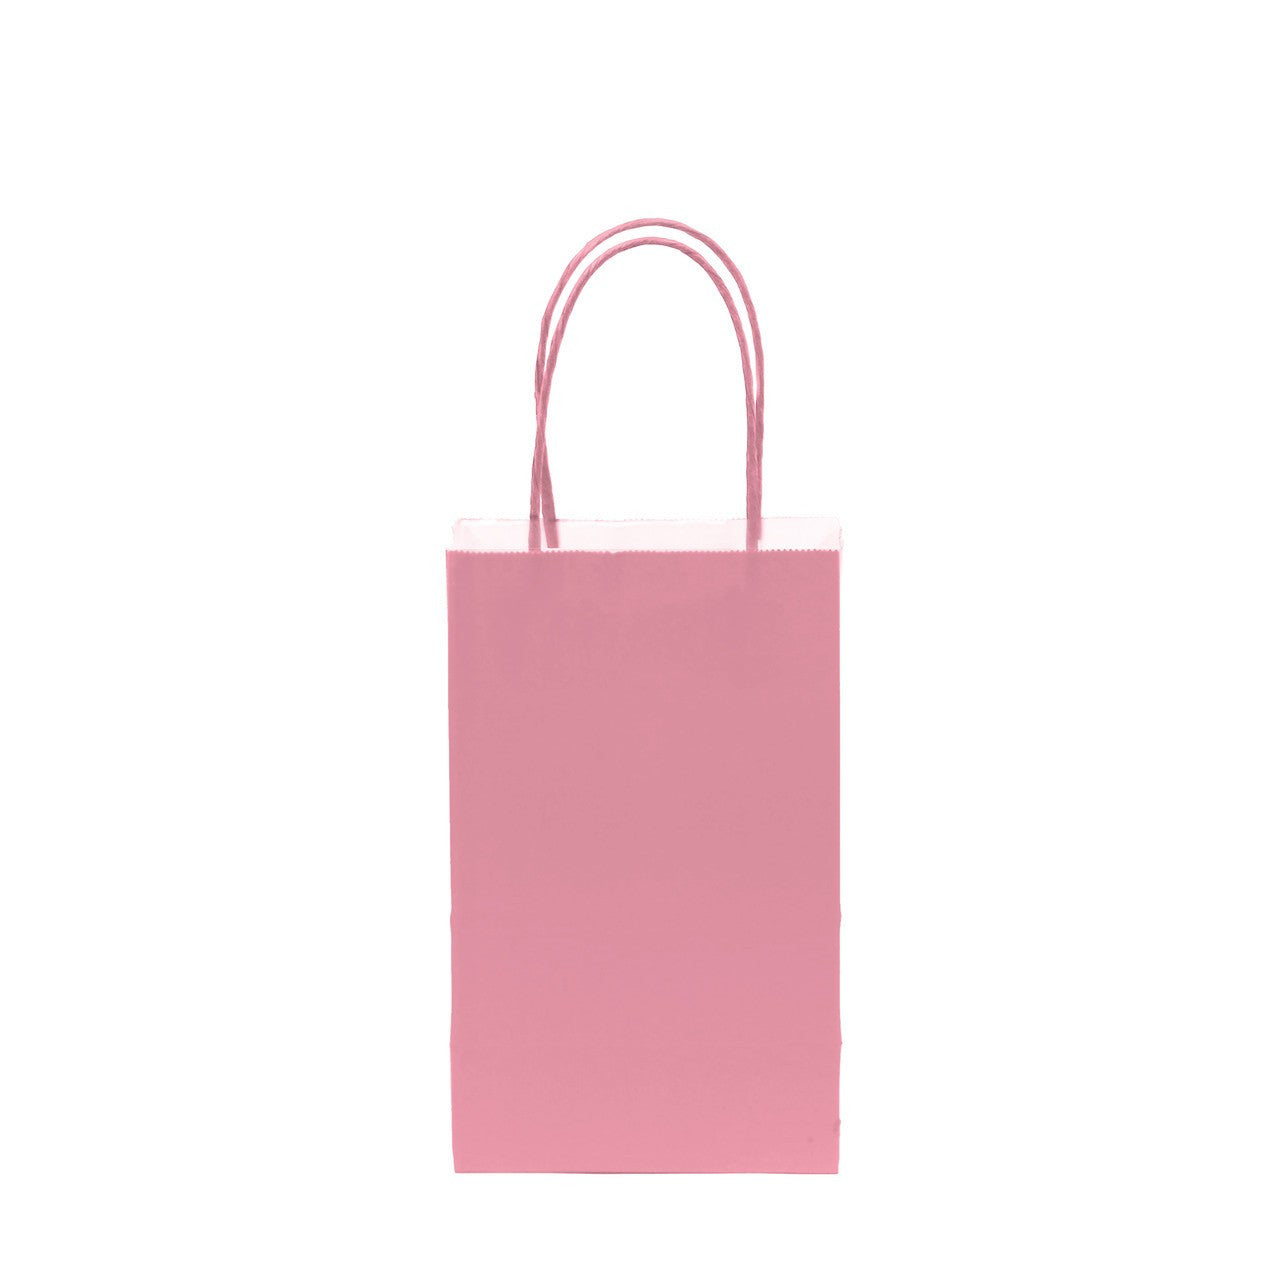 "12 pcs- Solid Light Pink Color Kraft Bag 5"" x 8.25"""